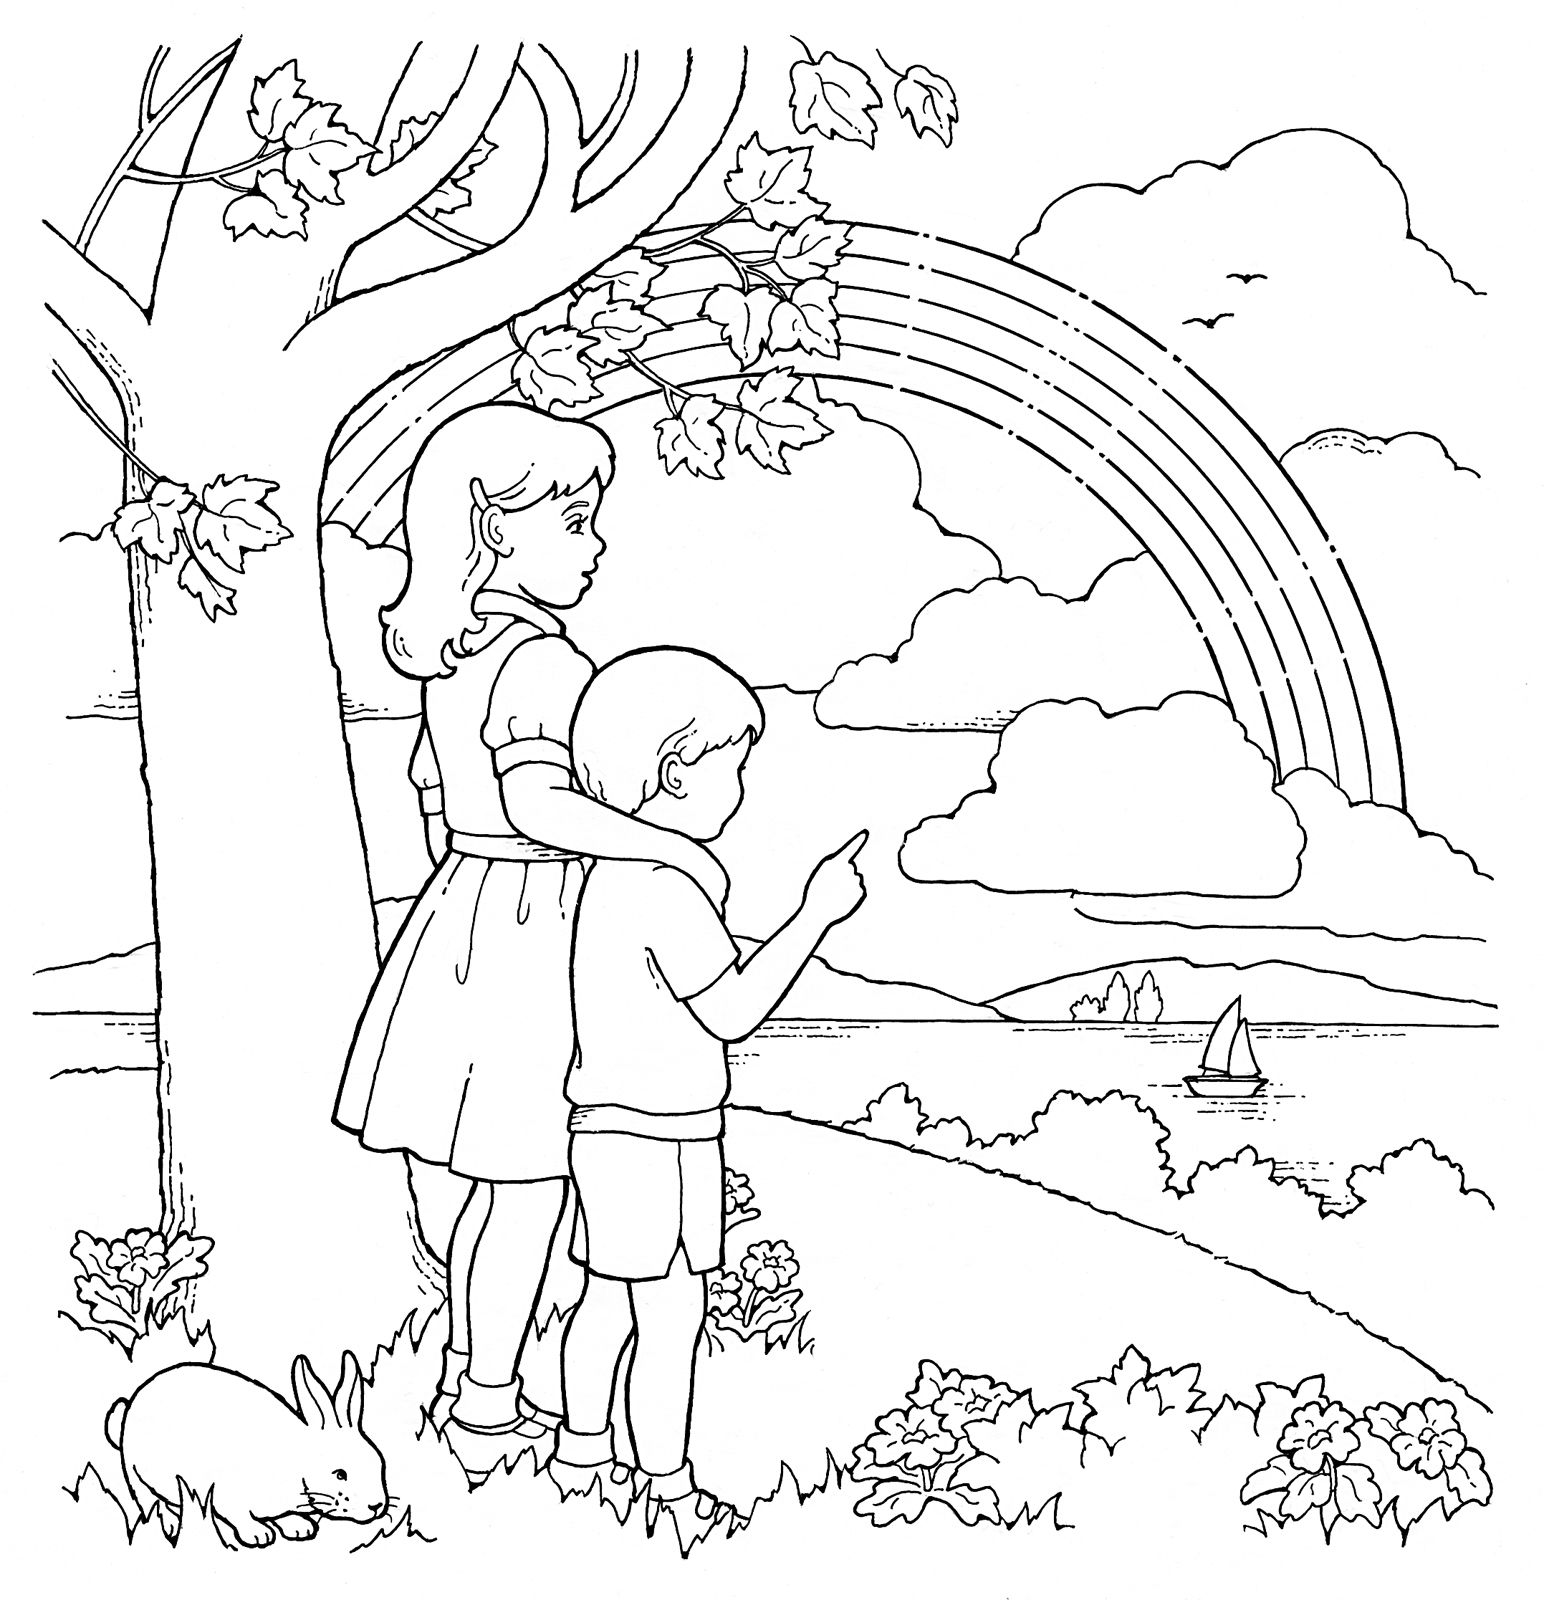 Clip Art Lds Church Coloring Pages 1000 images about lds primary coloring pages on pinterest 8th birthday and baptisms